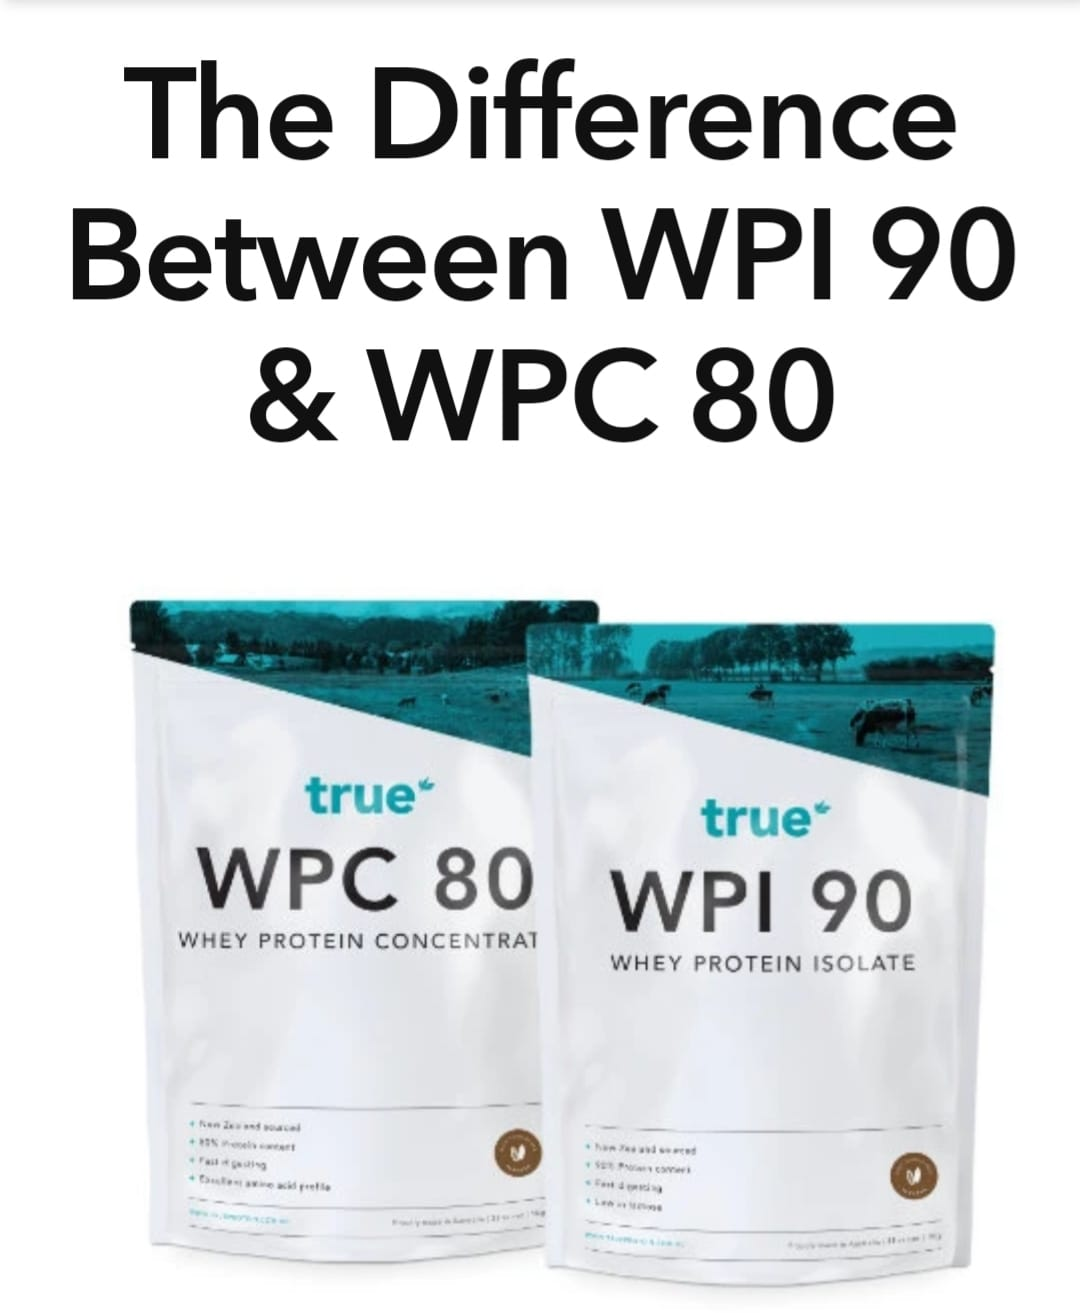 The difference between wpi 90 and wpc 80